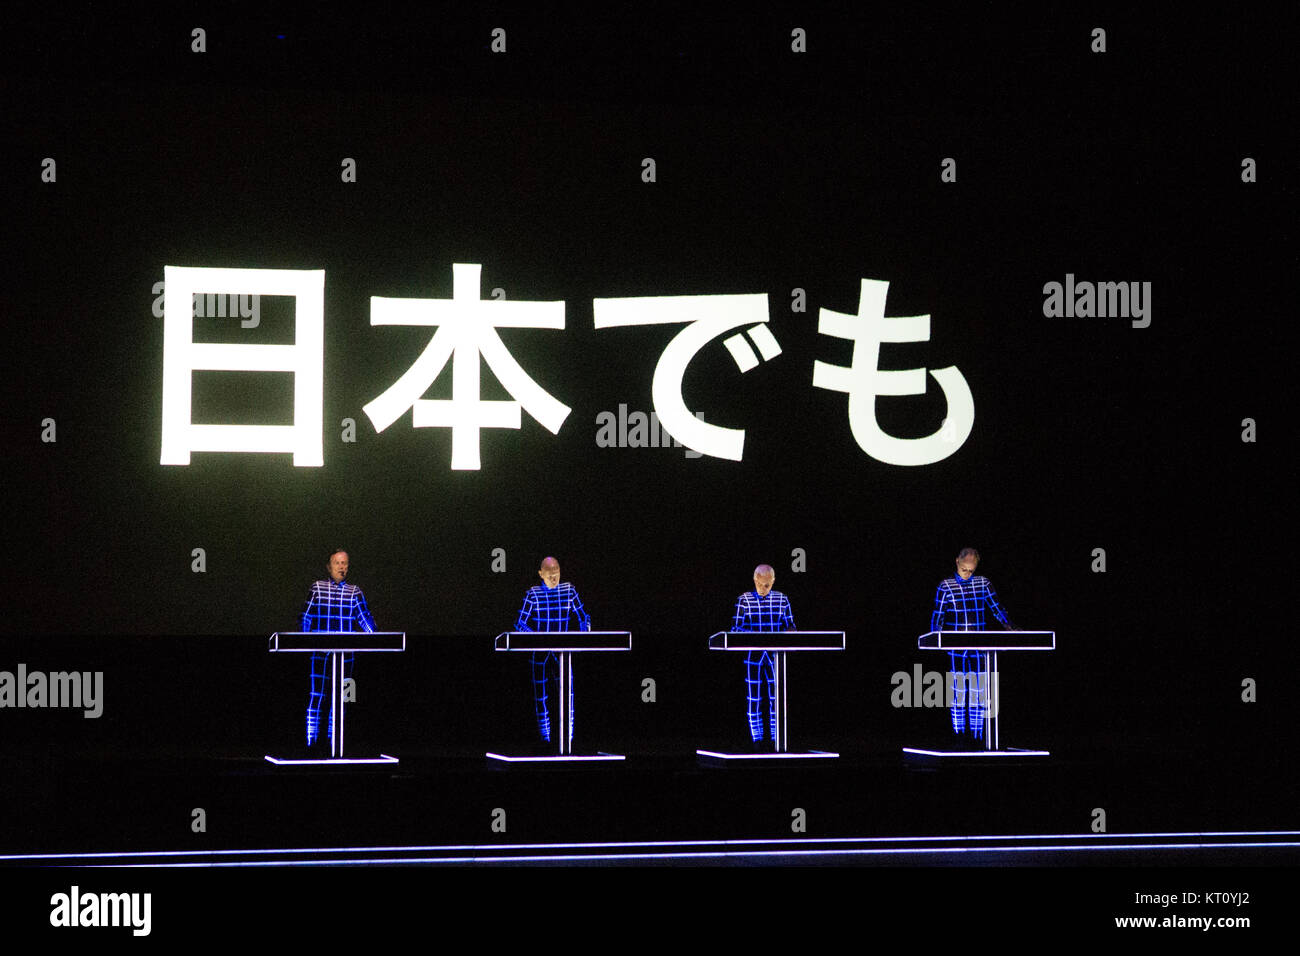 The legendary German electronic music band Kraftwerk